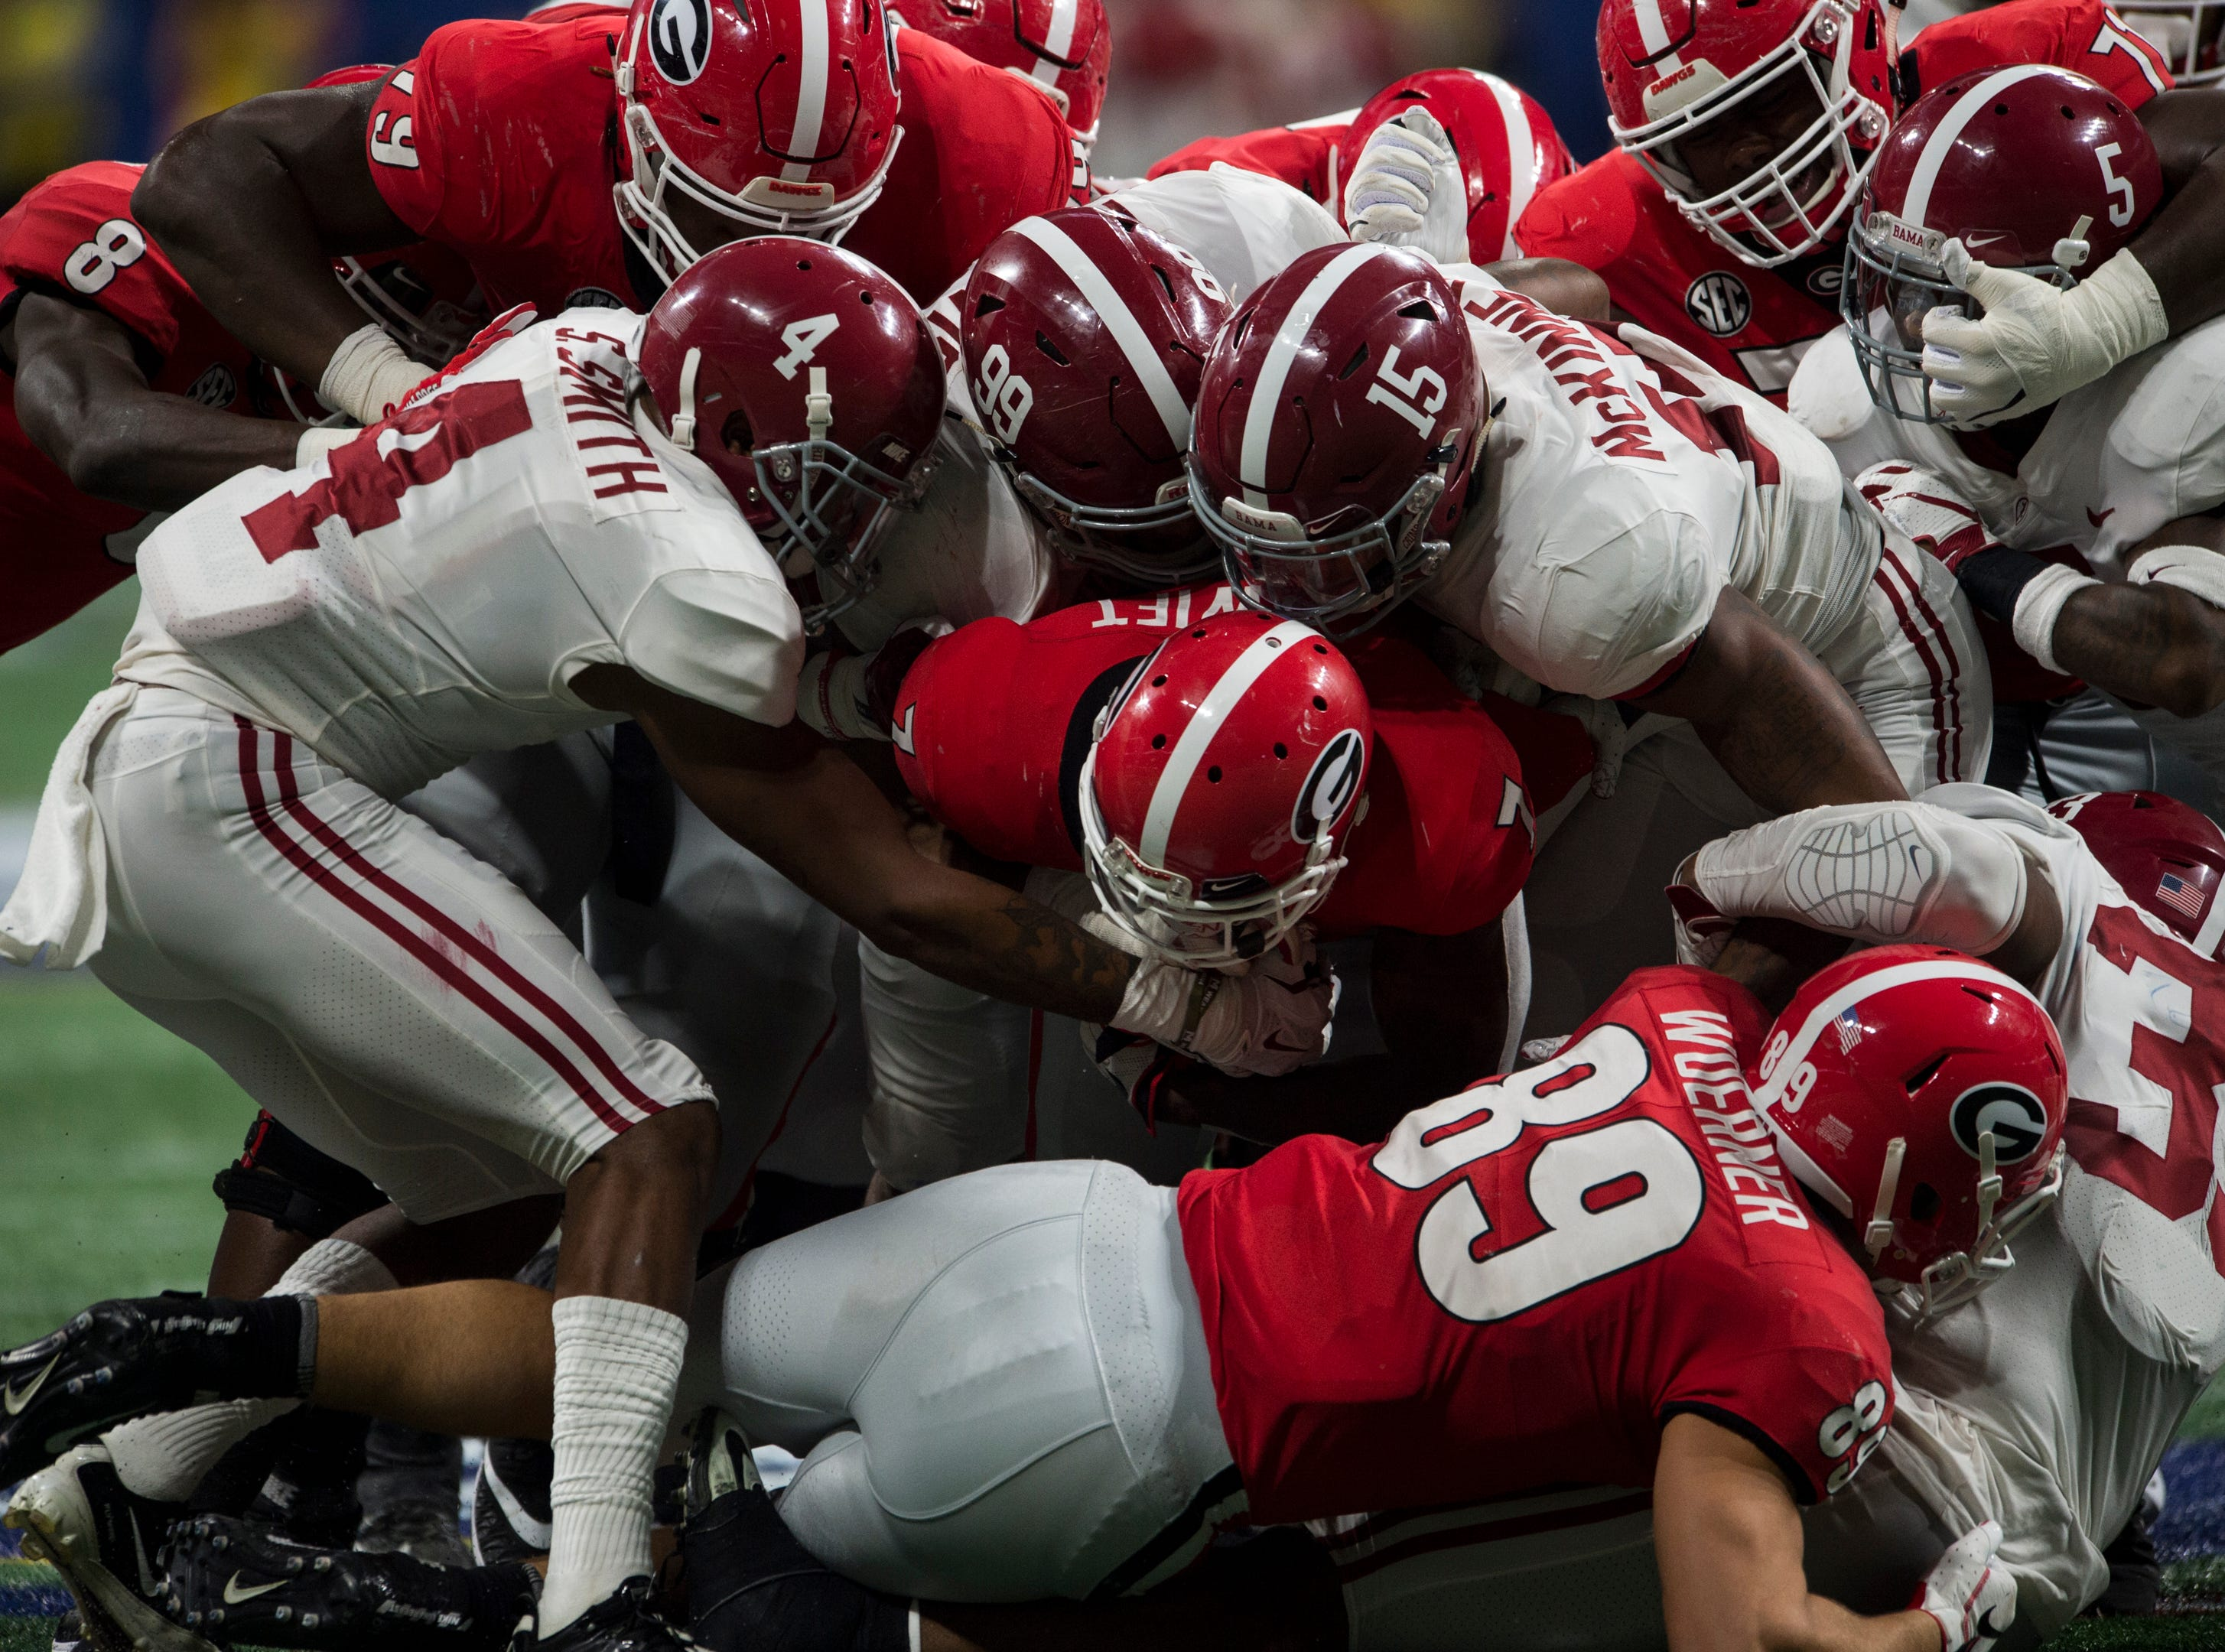 Georgia running back D'Andre Swift (7) is taken down by a swarm of Alabama defenders during the SEC Championship game at Mercedes-Benz Stadium in Atlanta, Ga., on Saturday Dec. 1, 2018. Georgia leads Alabama 21-14 at halftime.